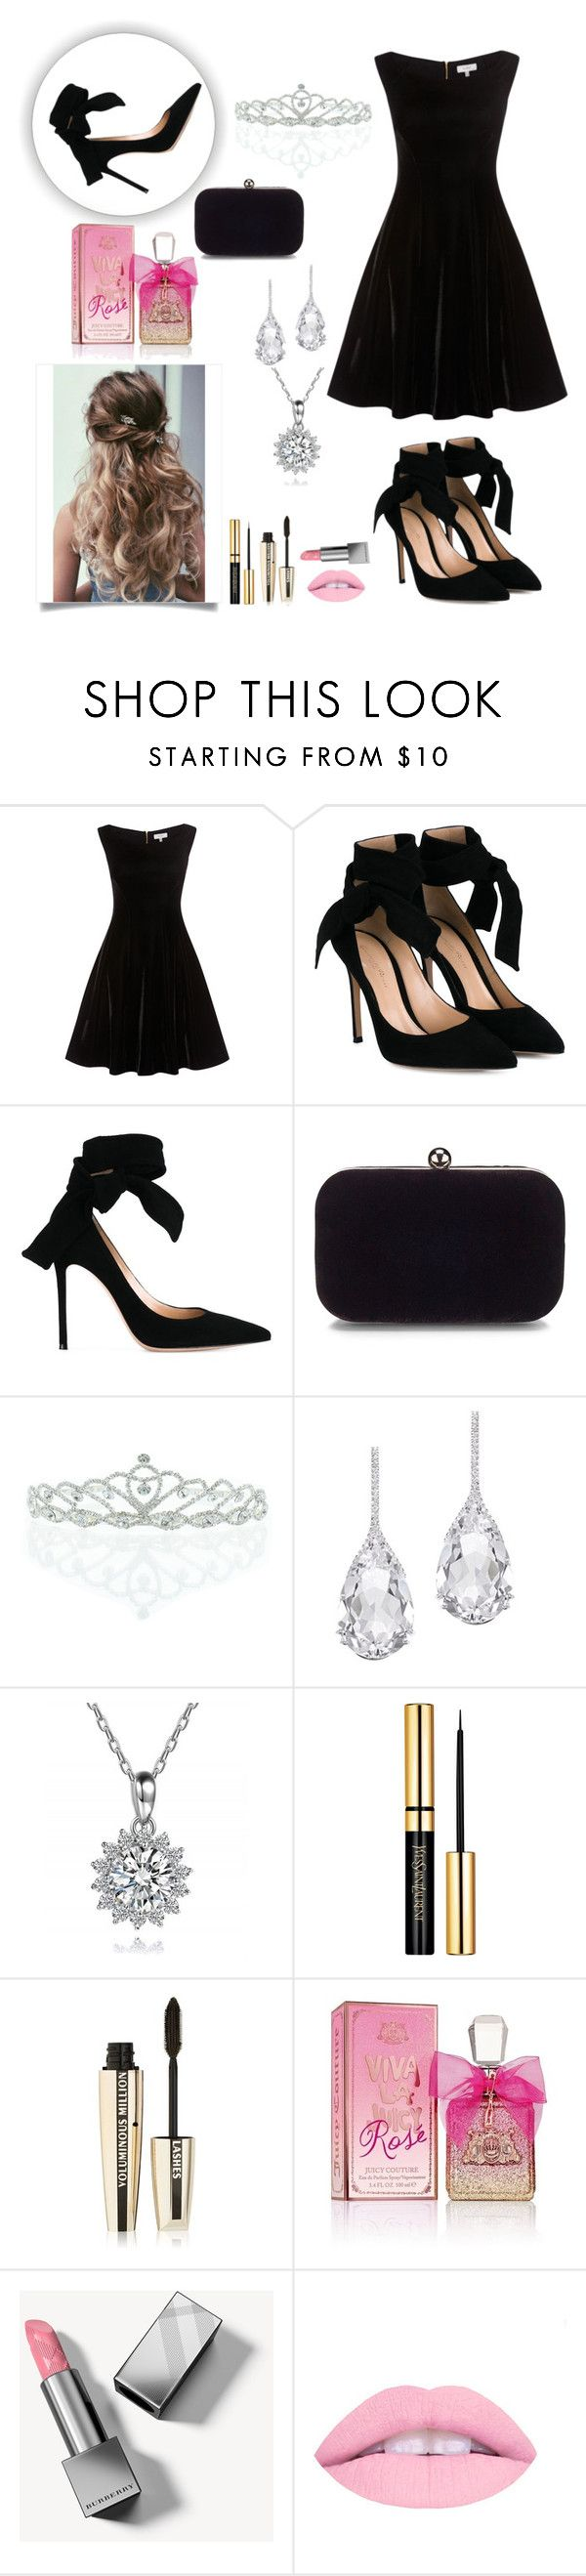 """""""Emma and Tyler <3 (RTD)"""" by iz-so-kray-kray ❤ liked on Polyvore featuring Gianvito Rossi, Kate Marie, Plukka, L'Oréal Paris, Juicy Couture, Burberry and bedroom"""